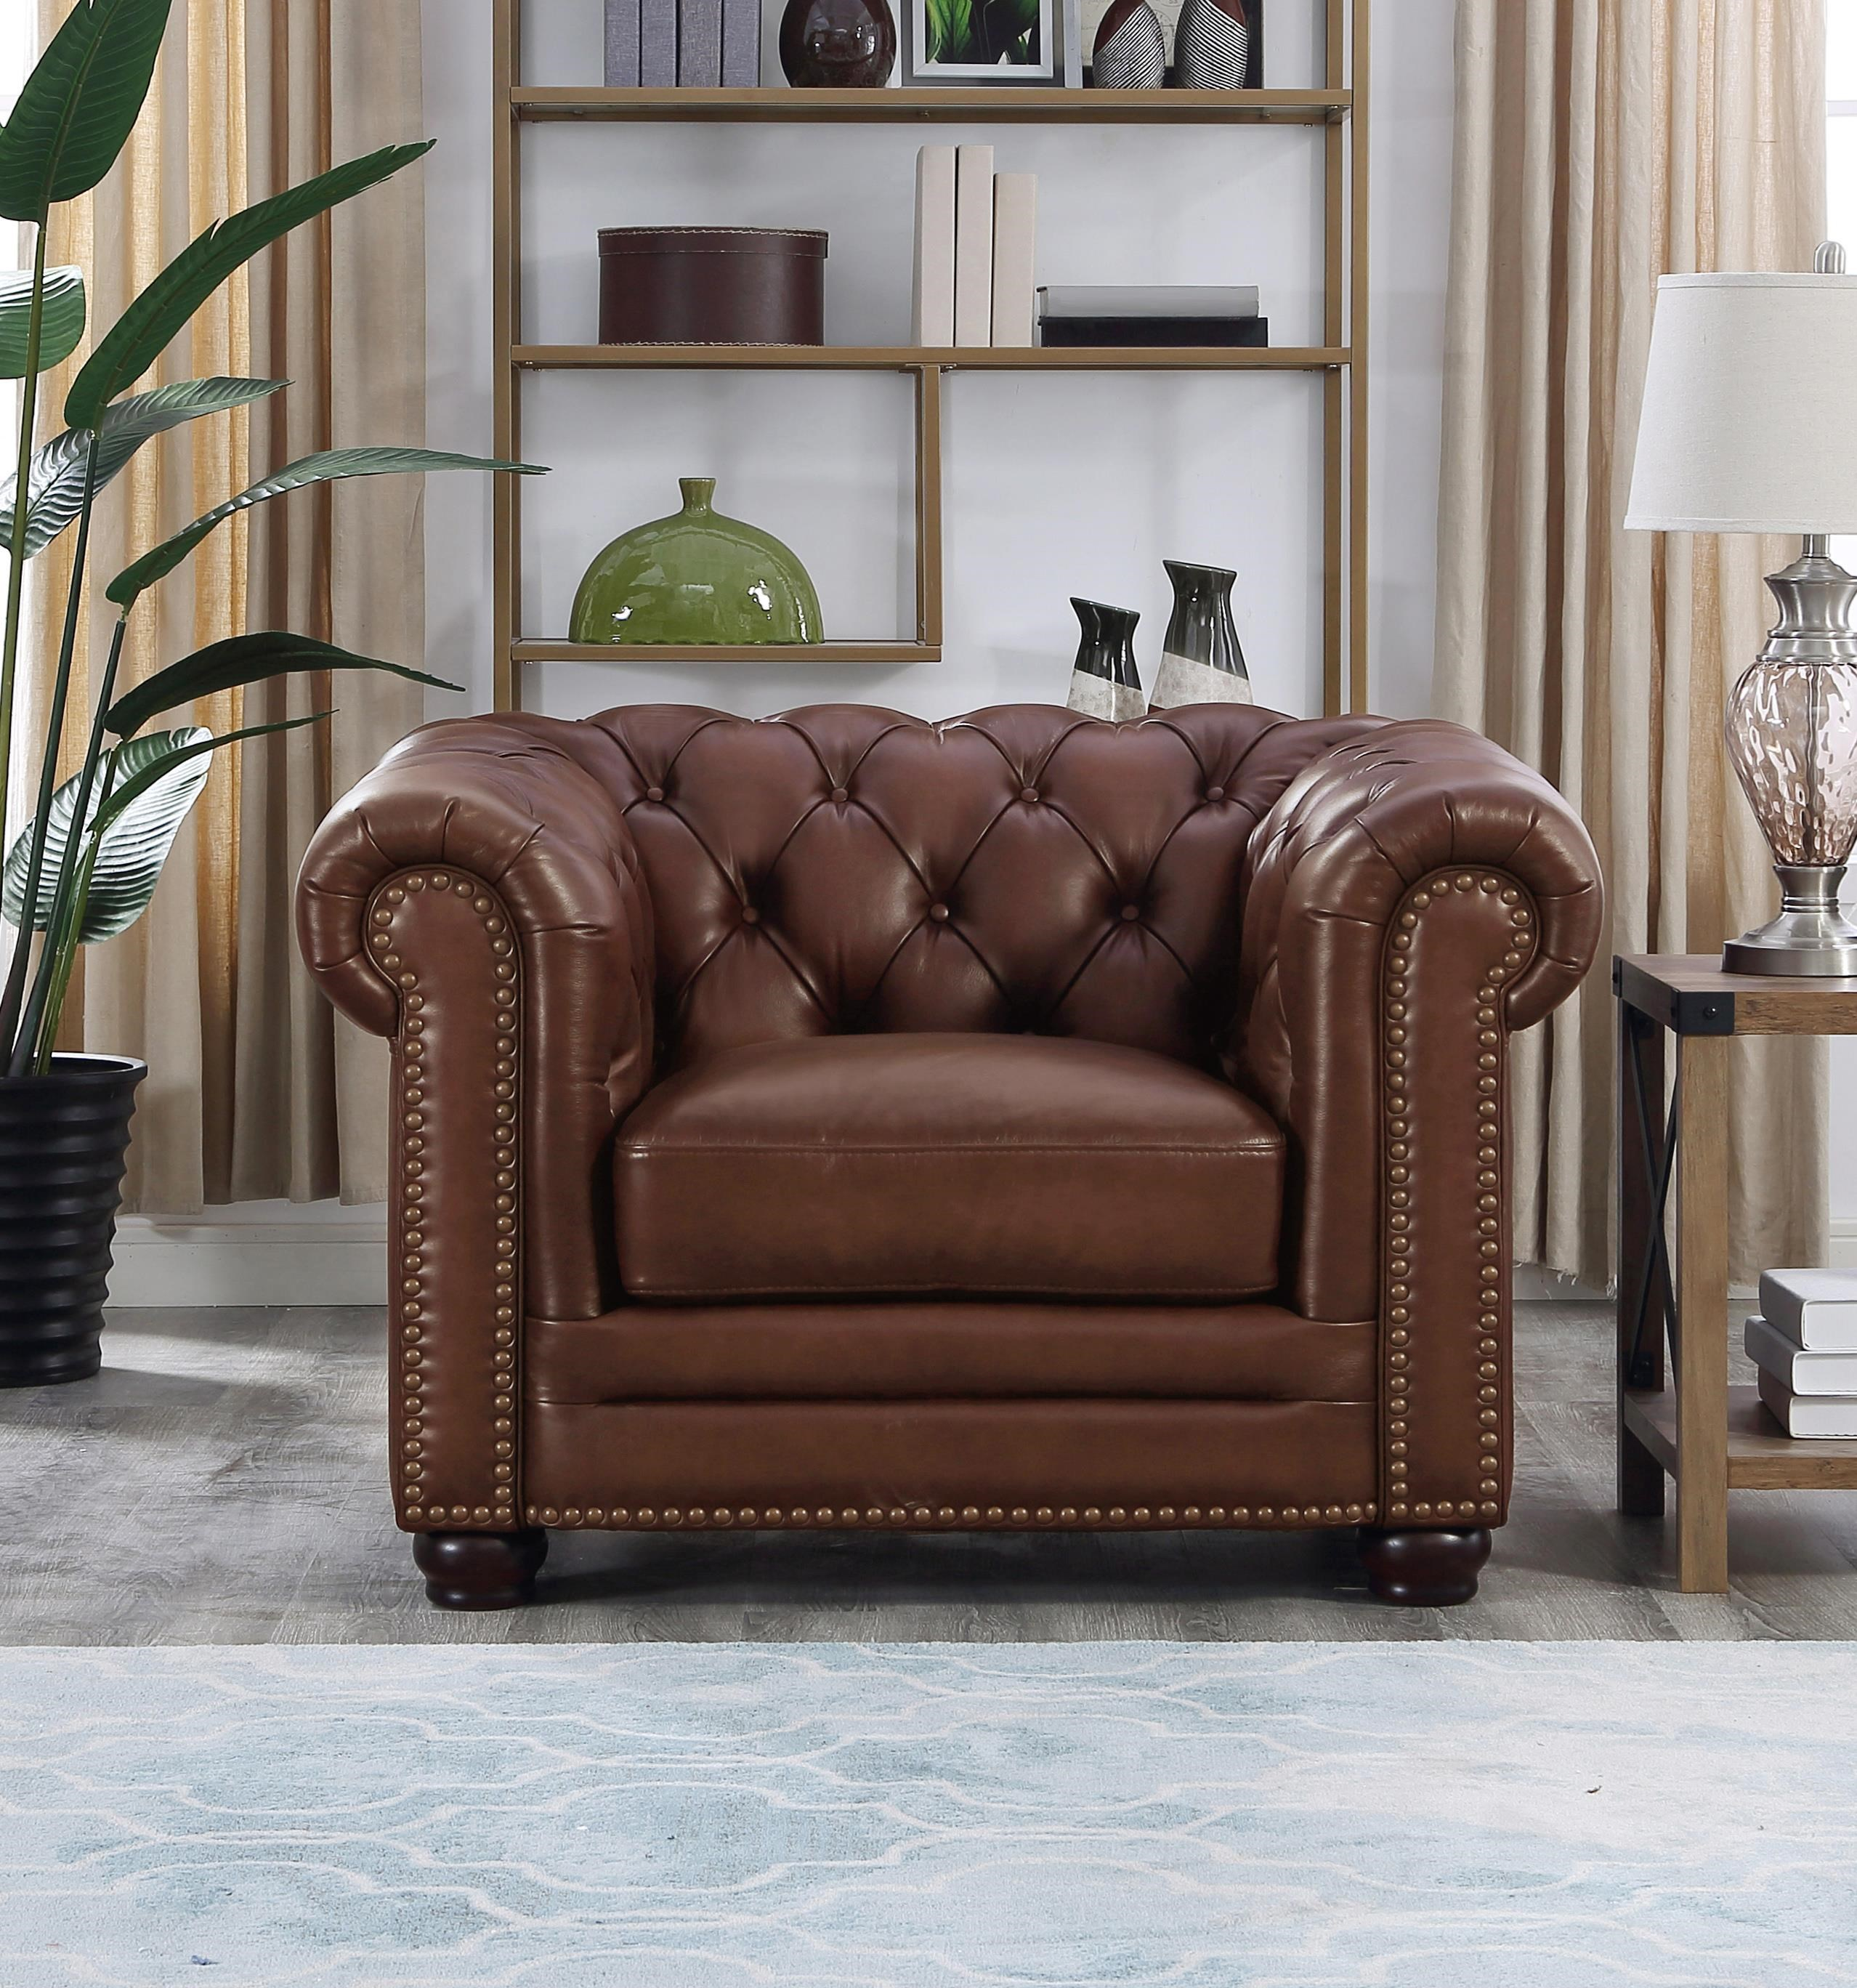 Kennedy DD Chair by Amax at Stoney Creek Furniture